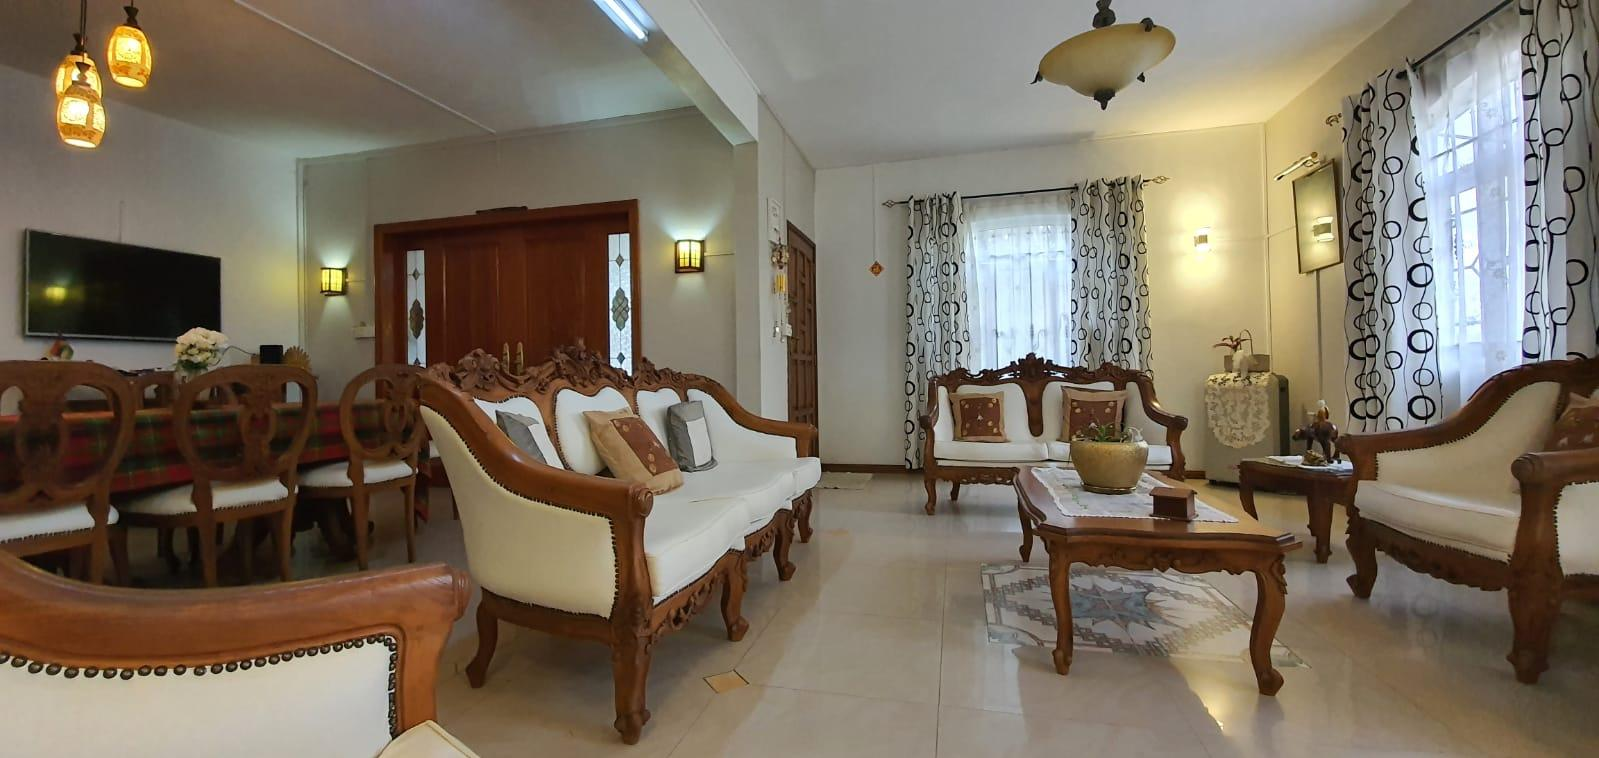 FOR SALE – Charming and spacious unfurnished house of 464 m2 on a land of 217 toises is located in the morcellementof Pinewood Garden in Wooton